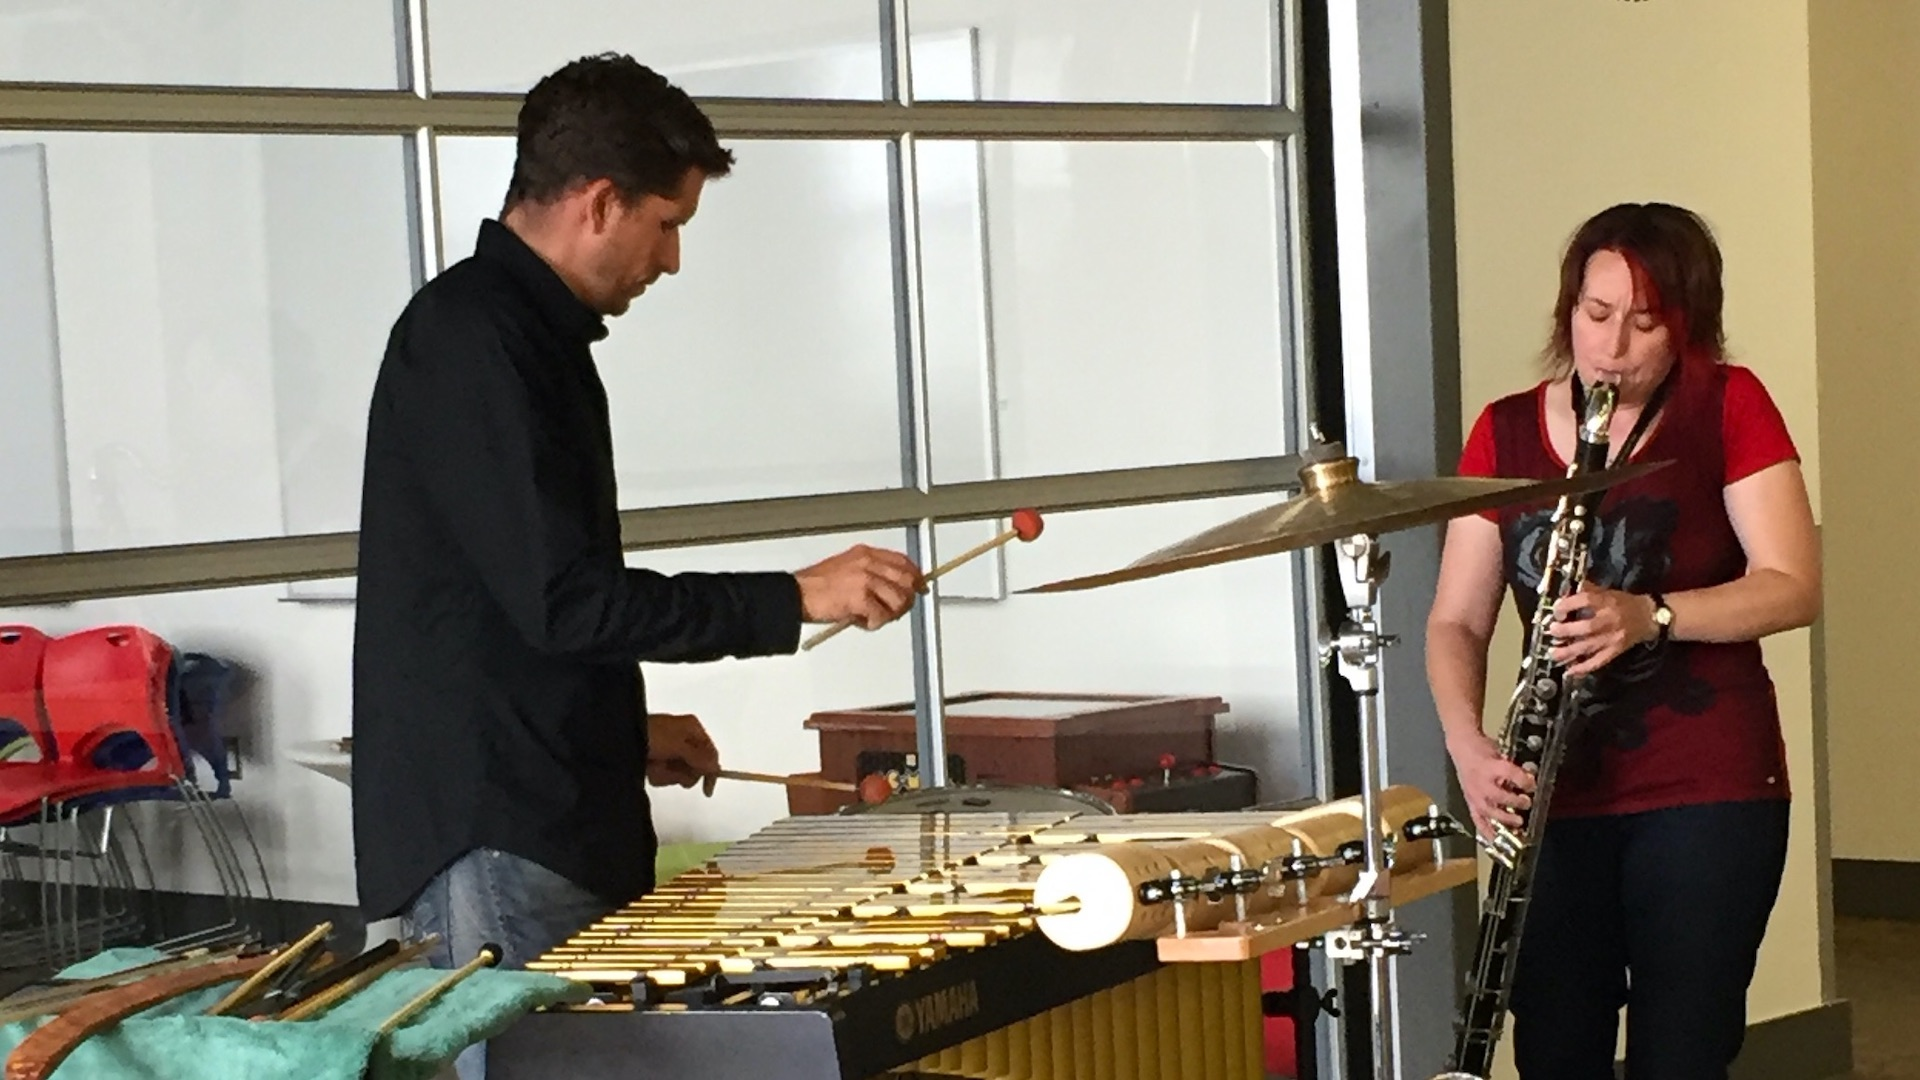 A man and woman playing musical instruments.